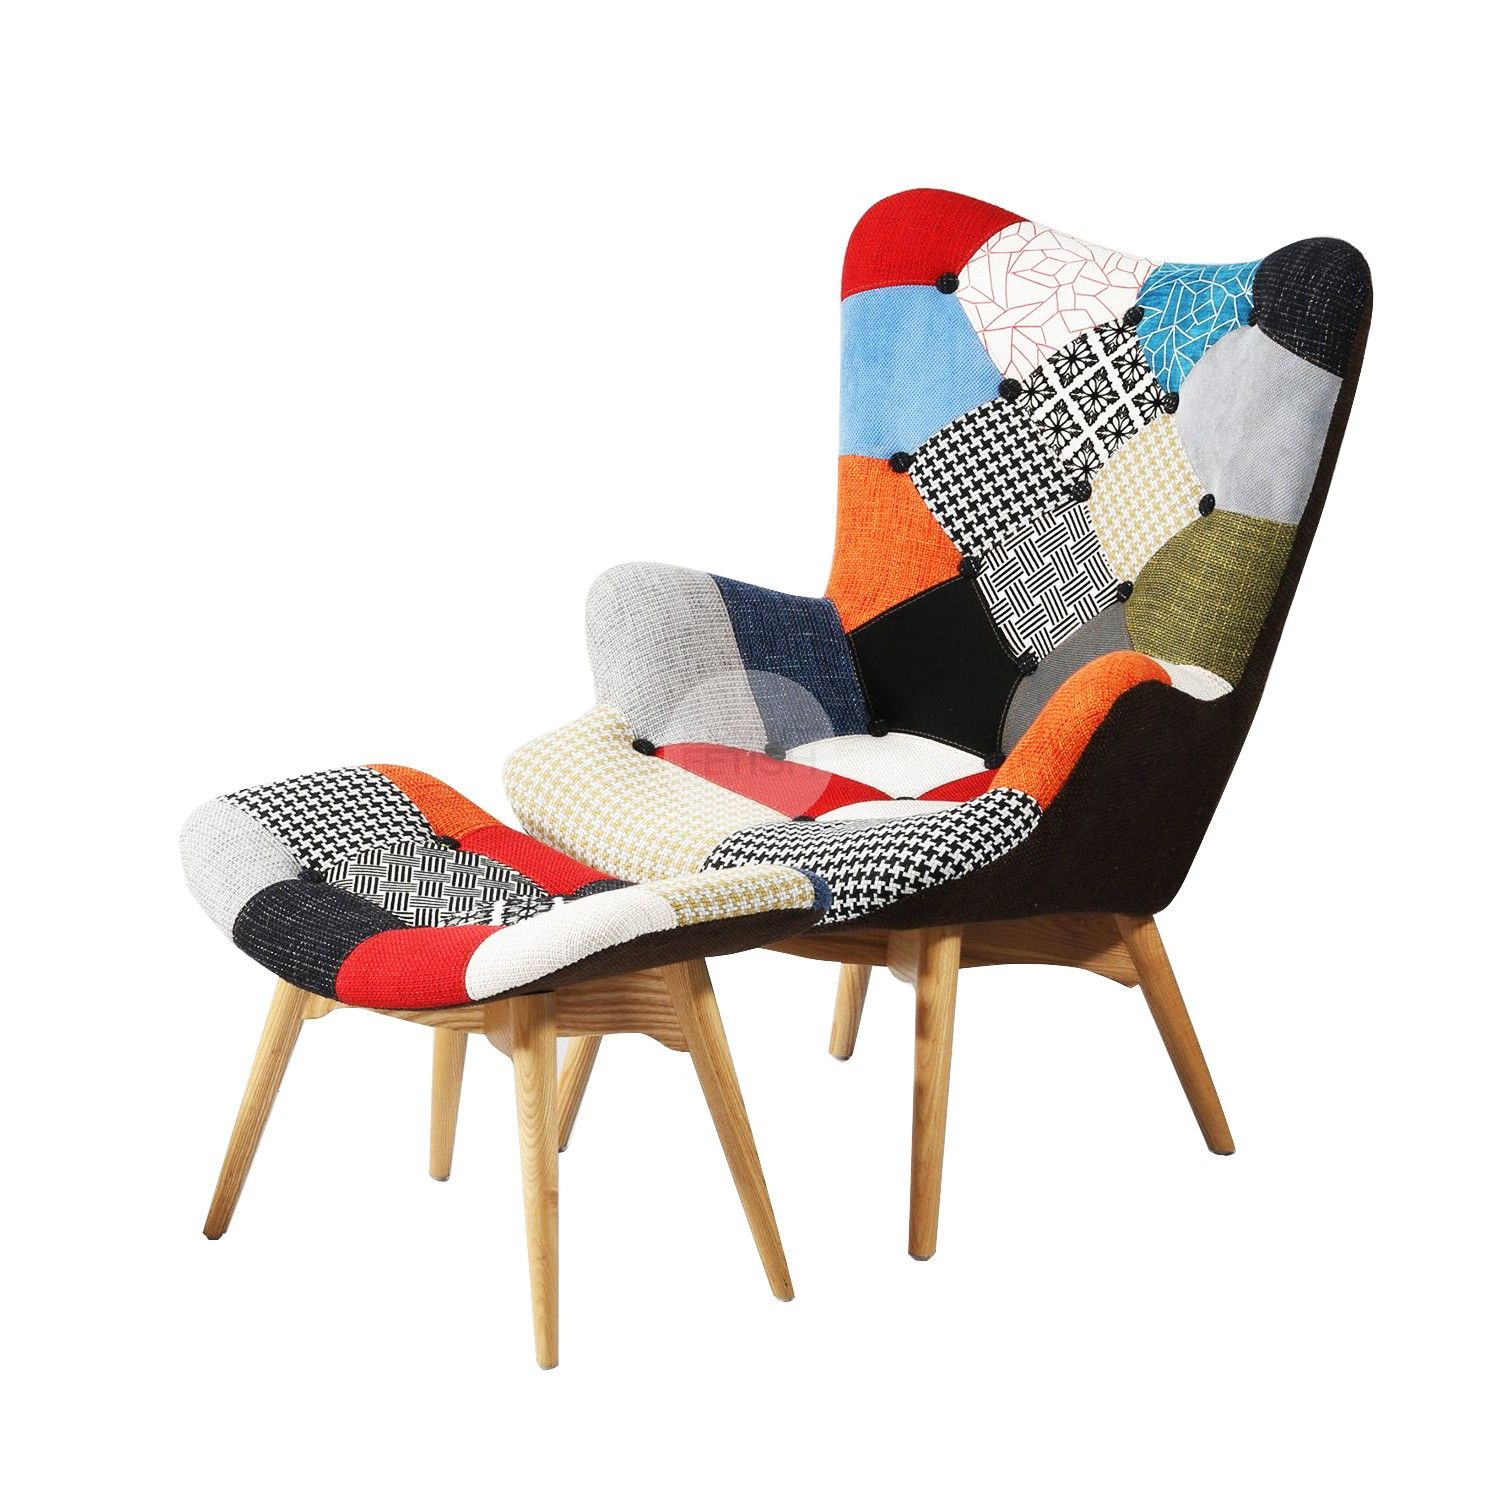 Grant Featherston Patchwork Chair & Ottoman